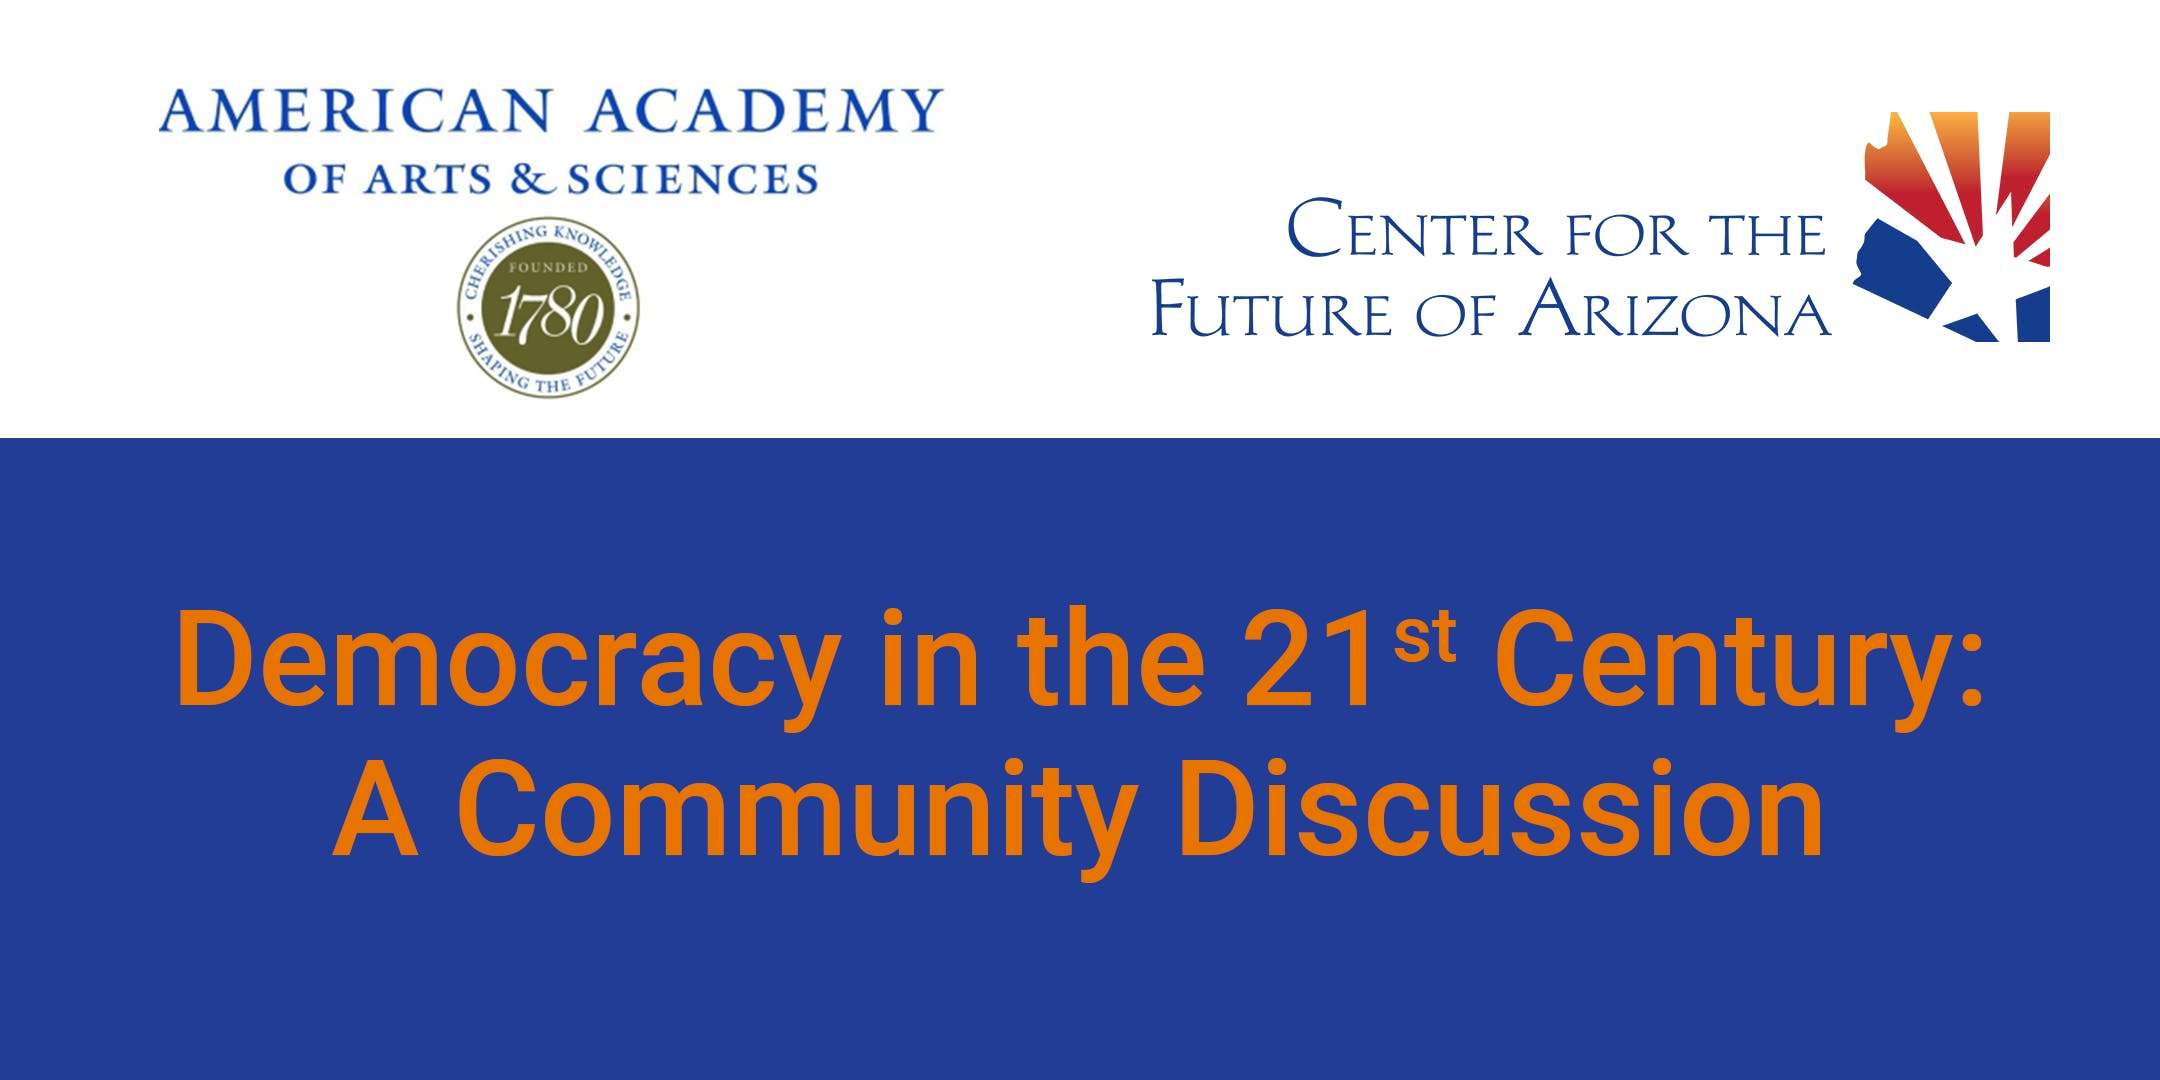 Democracy in the 21st Century: A Community Discussion